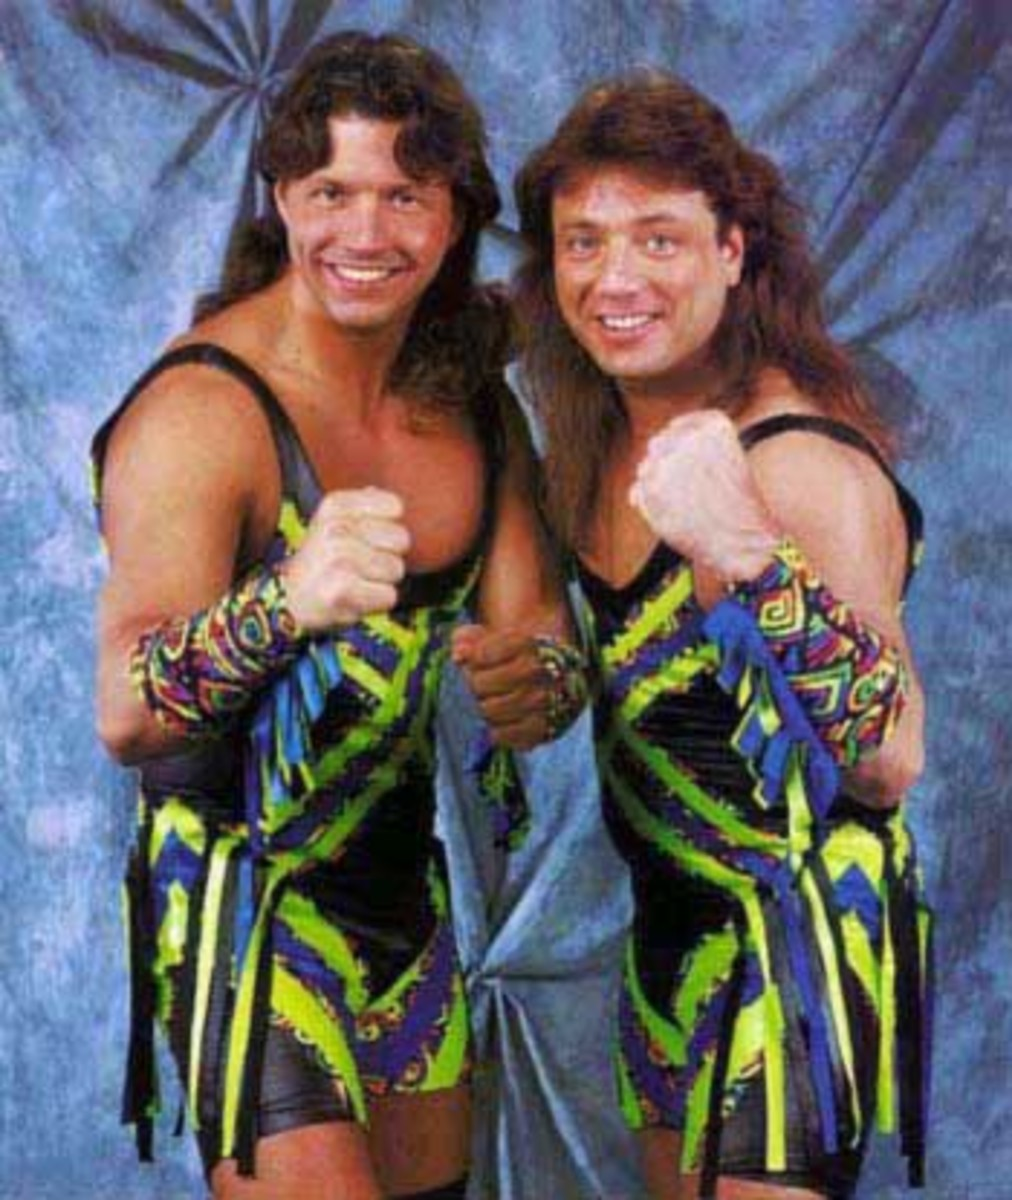 10-professional-wrestling-gimmicks-you-wish-you-could-forget